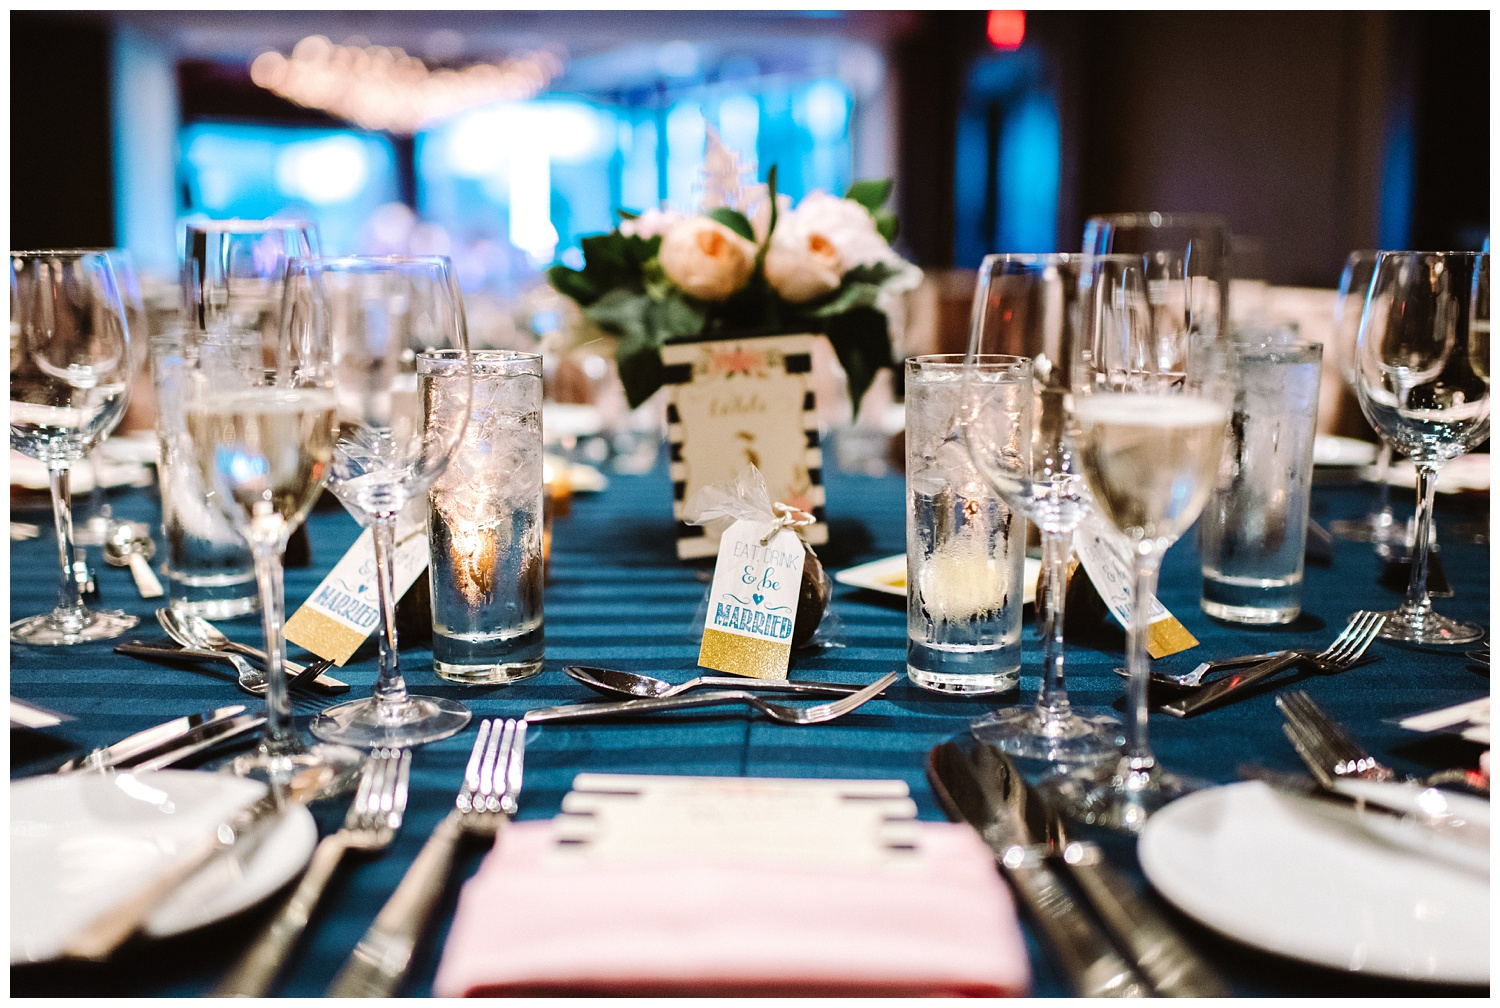 Renaissance Hotel Gillette Stadium Wedding Photographer85.jpg